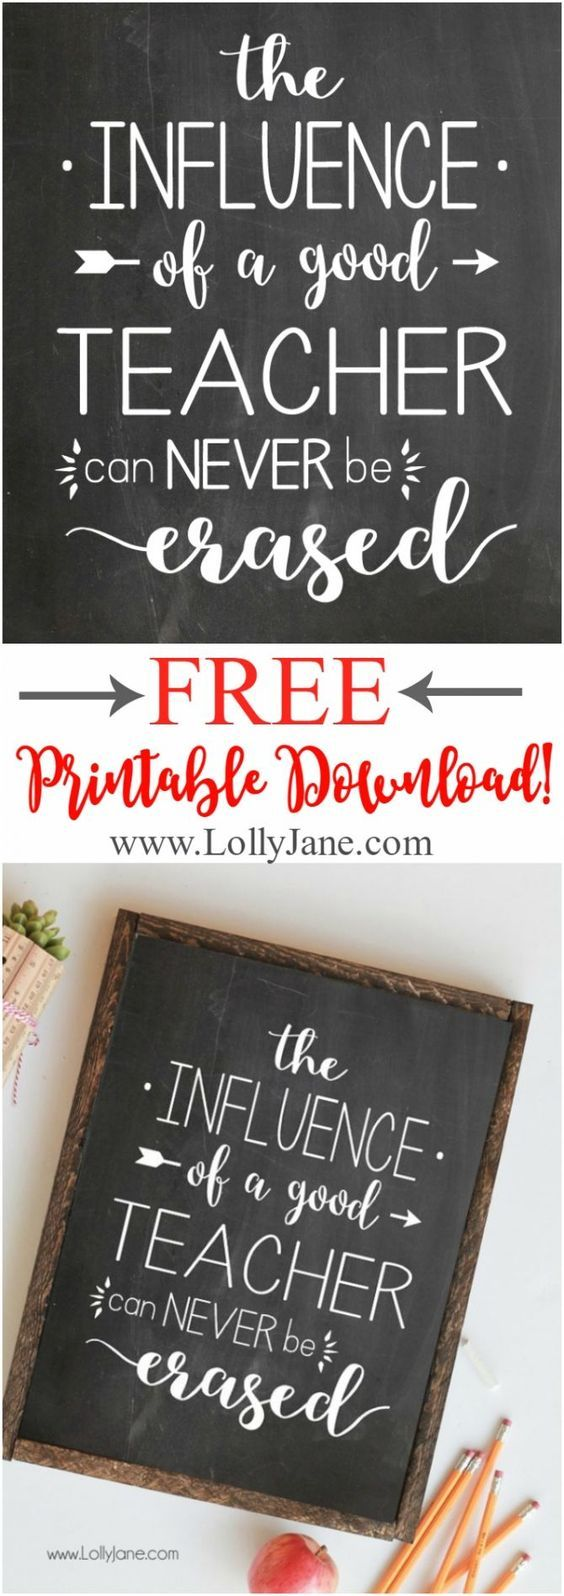 free online printable wedding thank you cards%0A   the influence of a good teacher can never be erased   printable art   Teacher Thank You